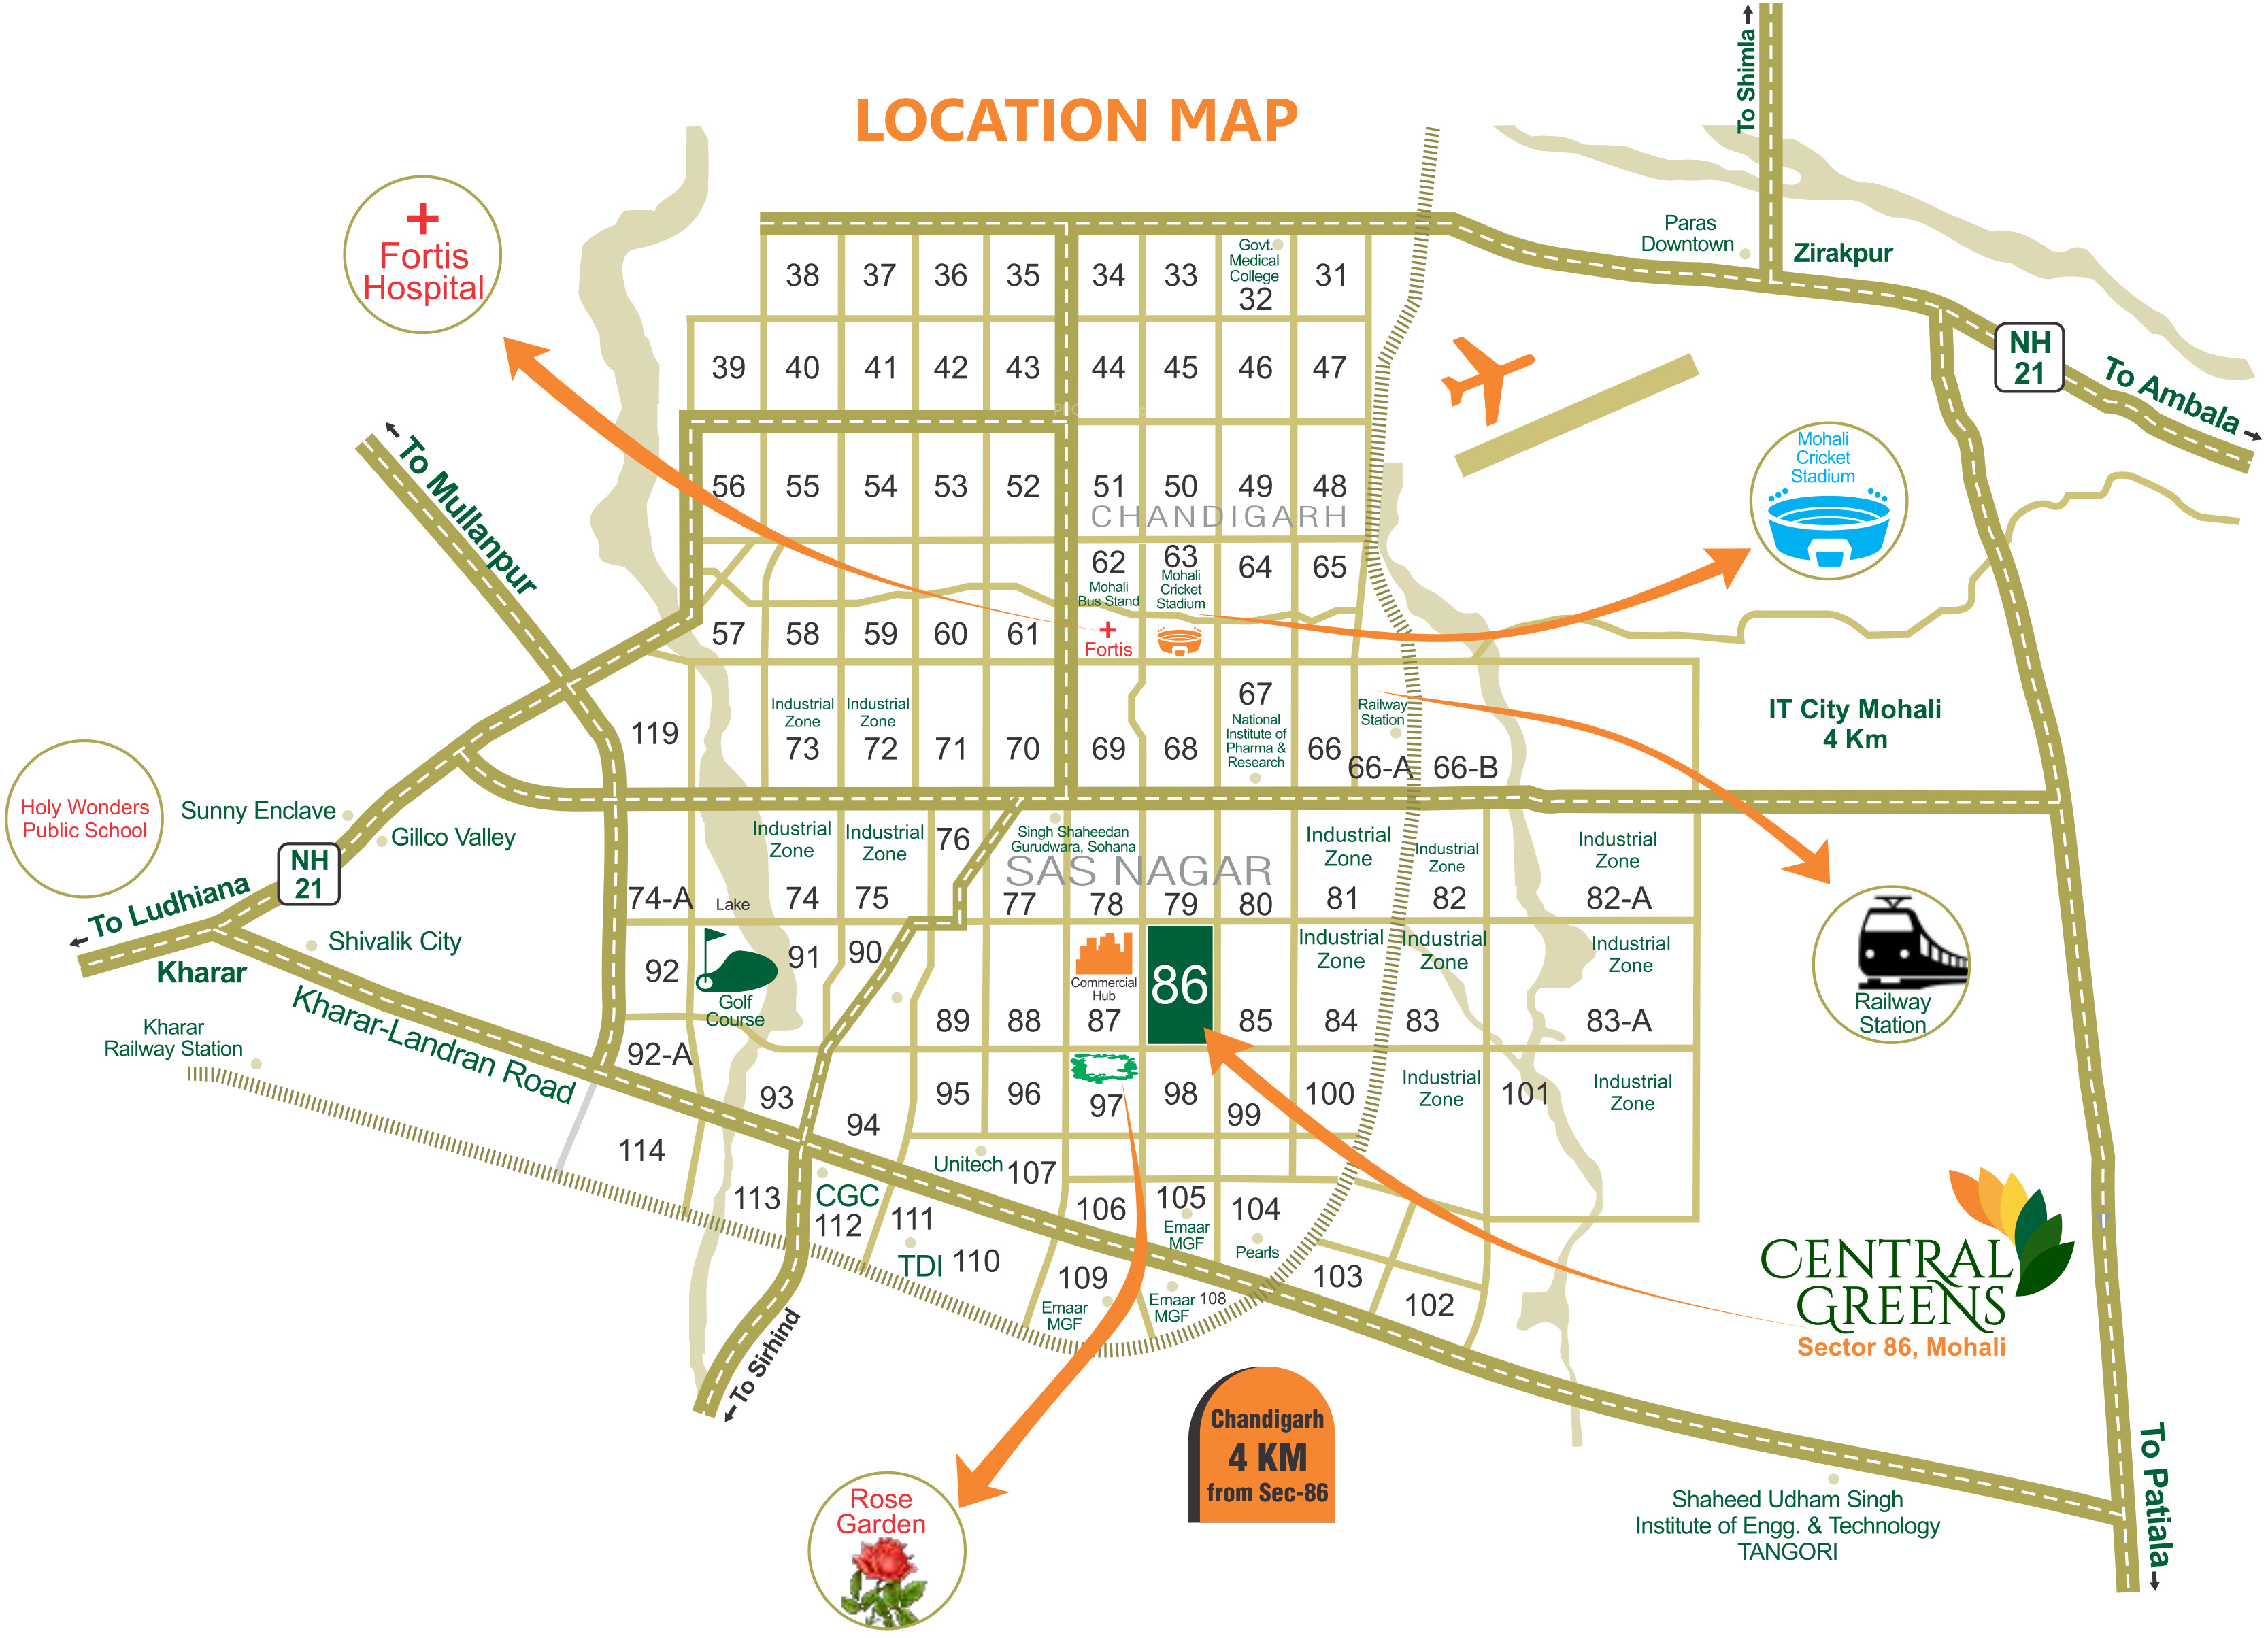 Map Of Mohali Vanshi Central Greens in Sector 86, Mohali   Price, Location Map